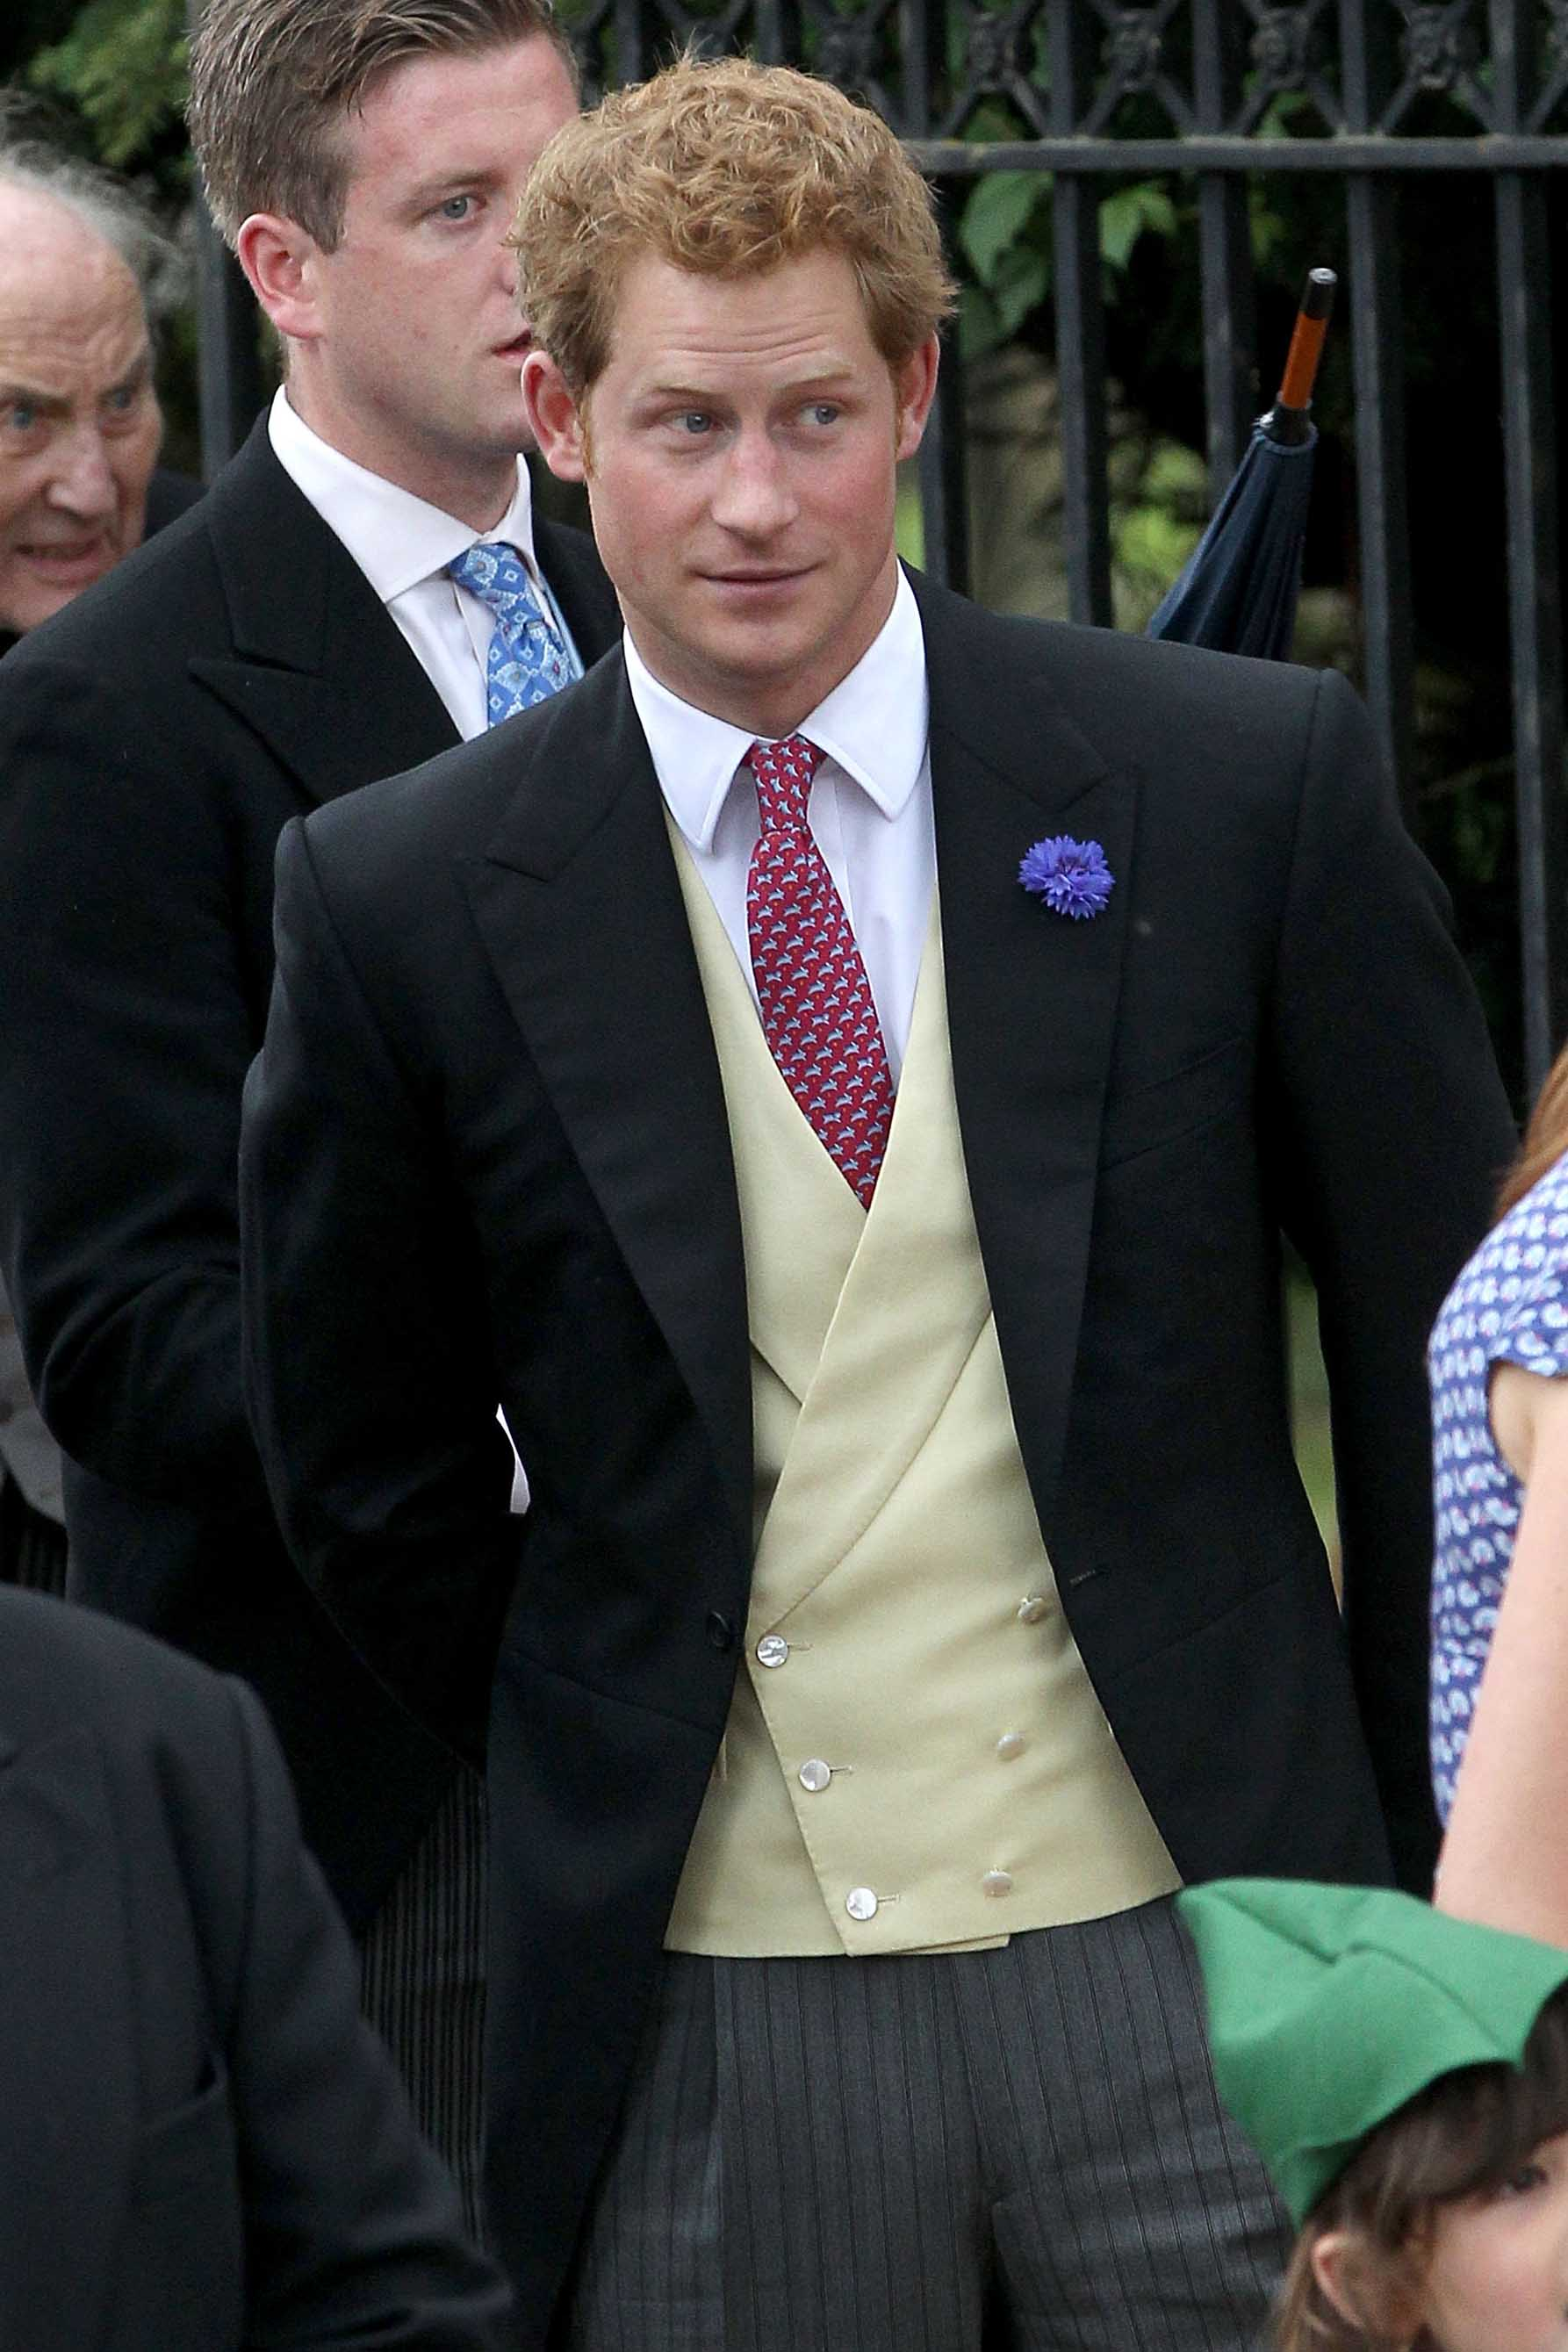 prince harry celebrated prince george's birth at the pub